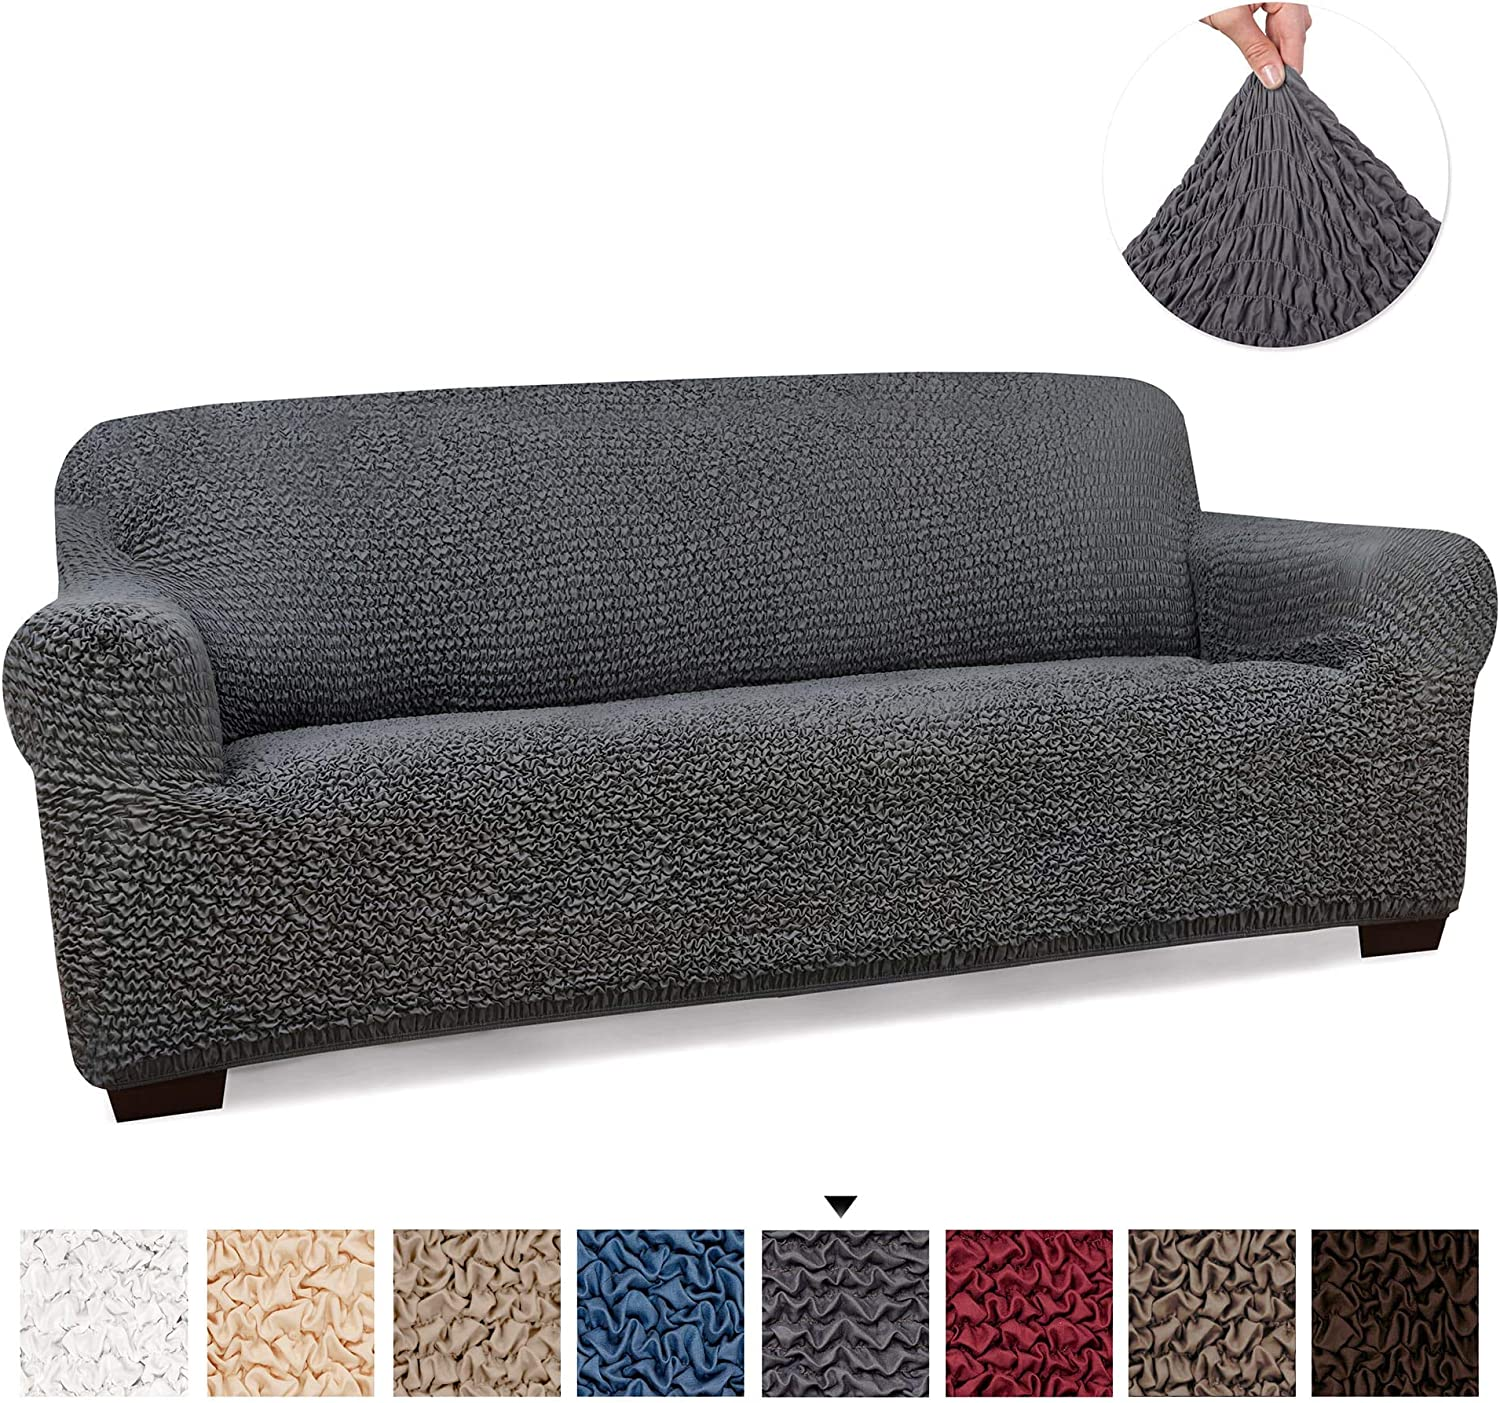 PAULATO BY GA.I.CO. Couch Cover Sofa Cover Sofa Slipcover Soft Polyester Fabric Slipcover 1 Piece Form Fit Stretch Stylish Furniture Cover